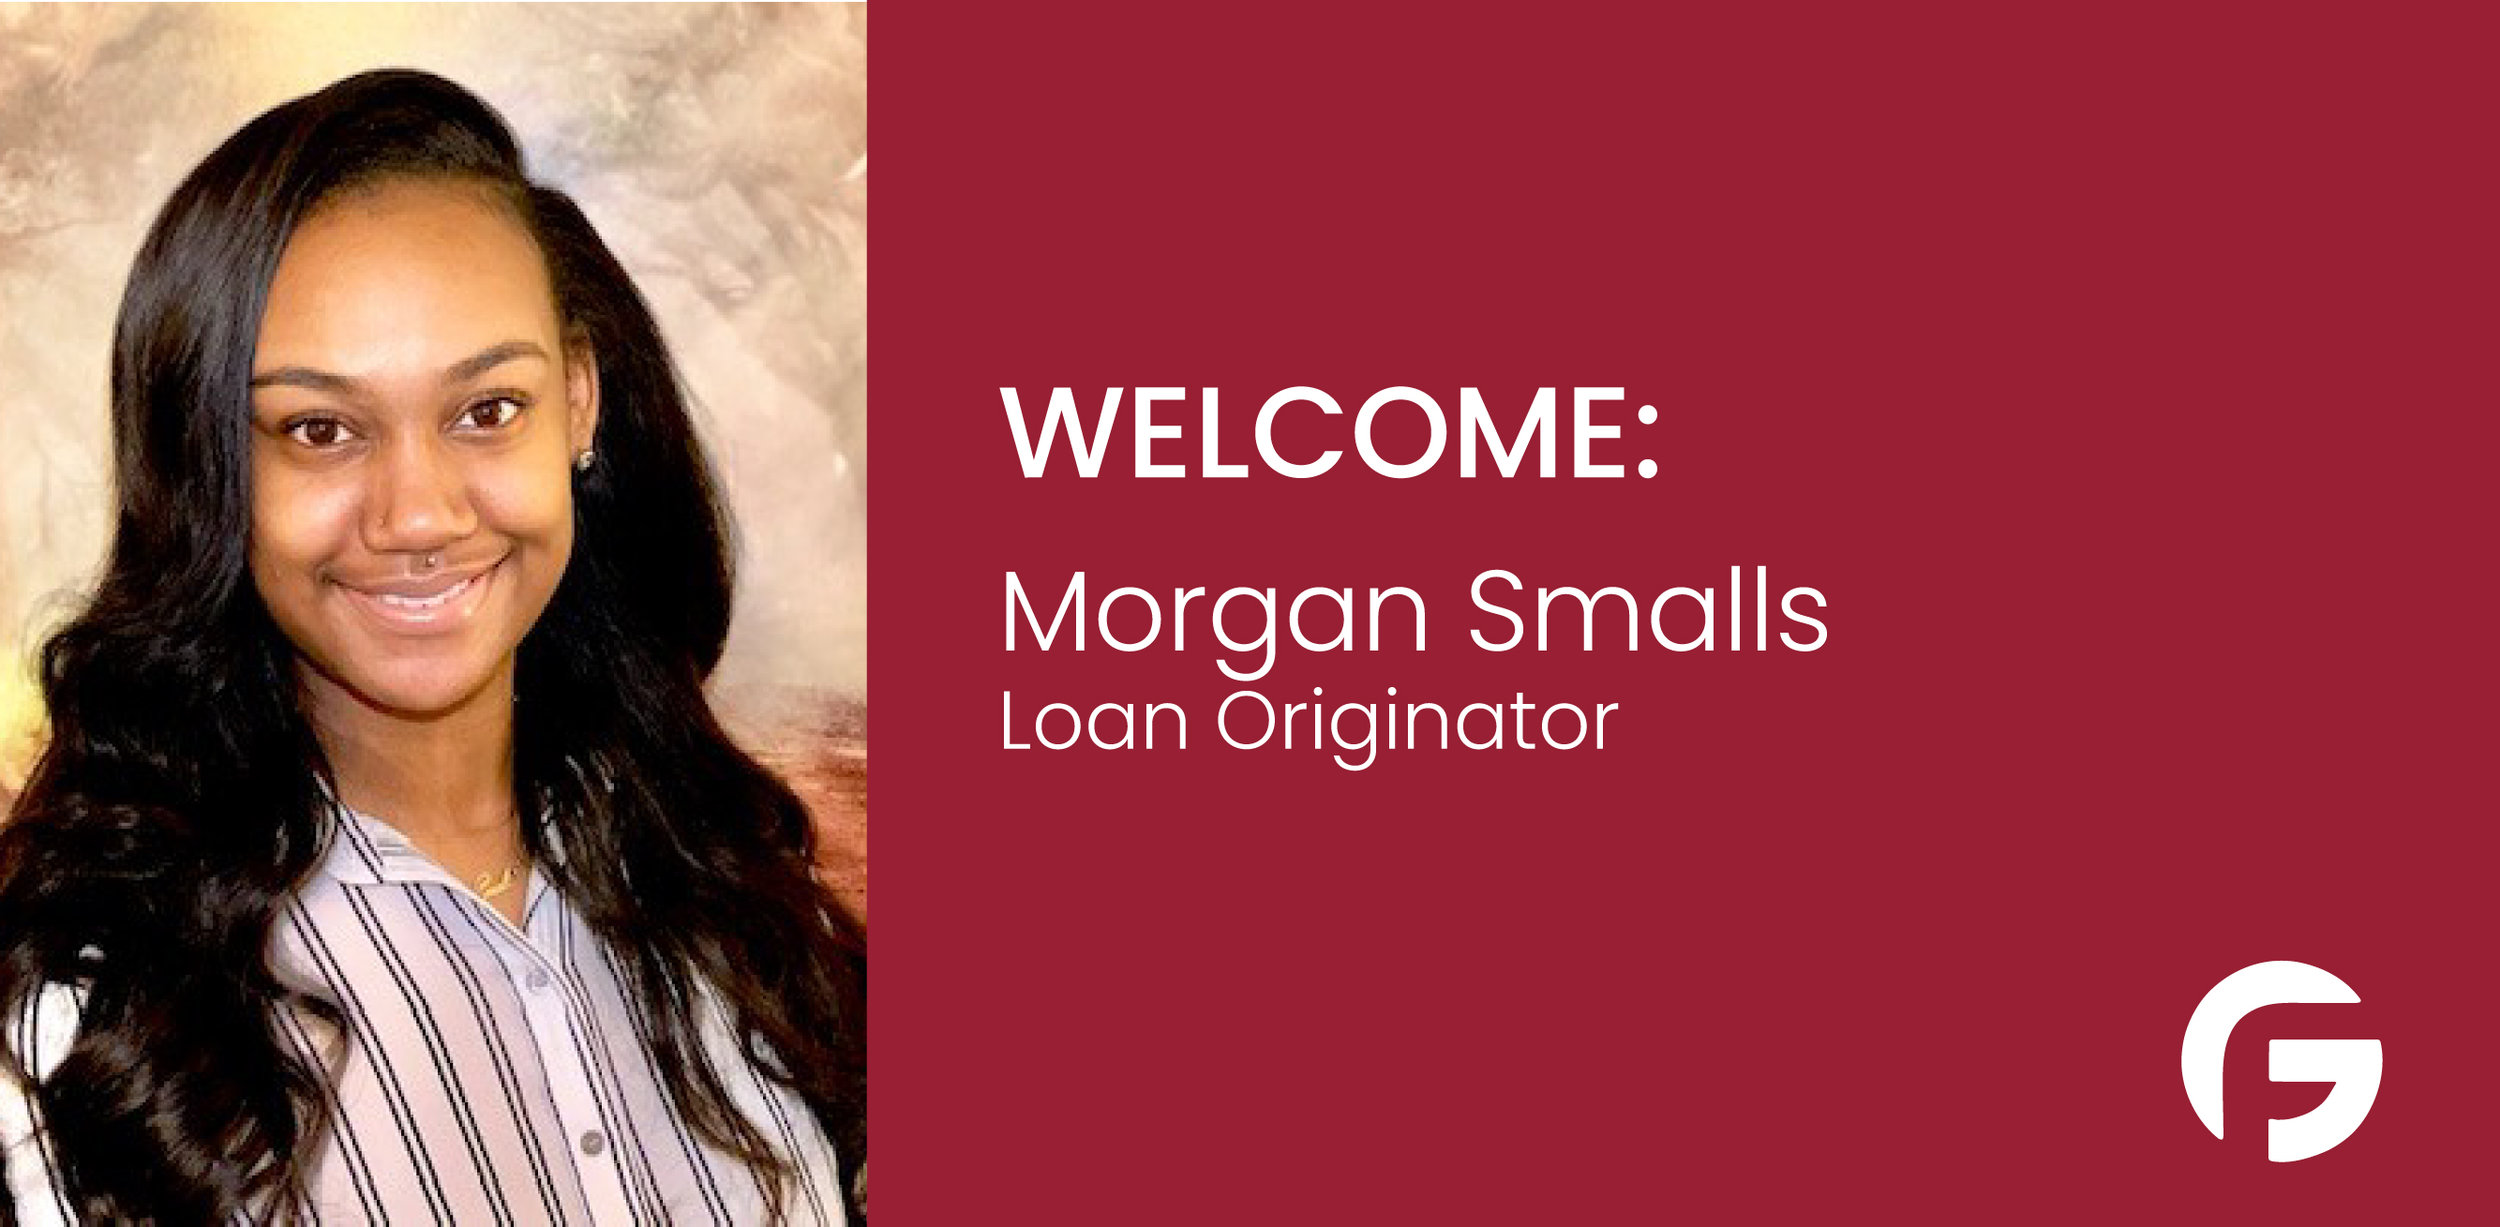 Morgan Smalls Loan Originator serving Georgia